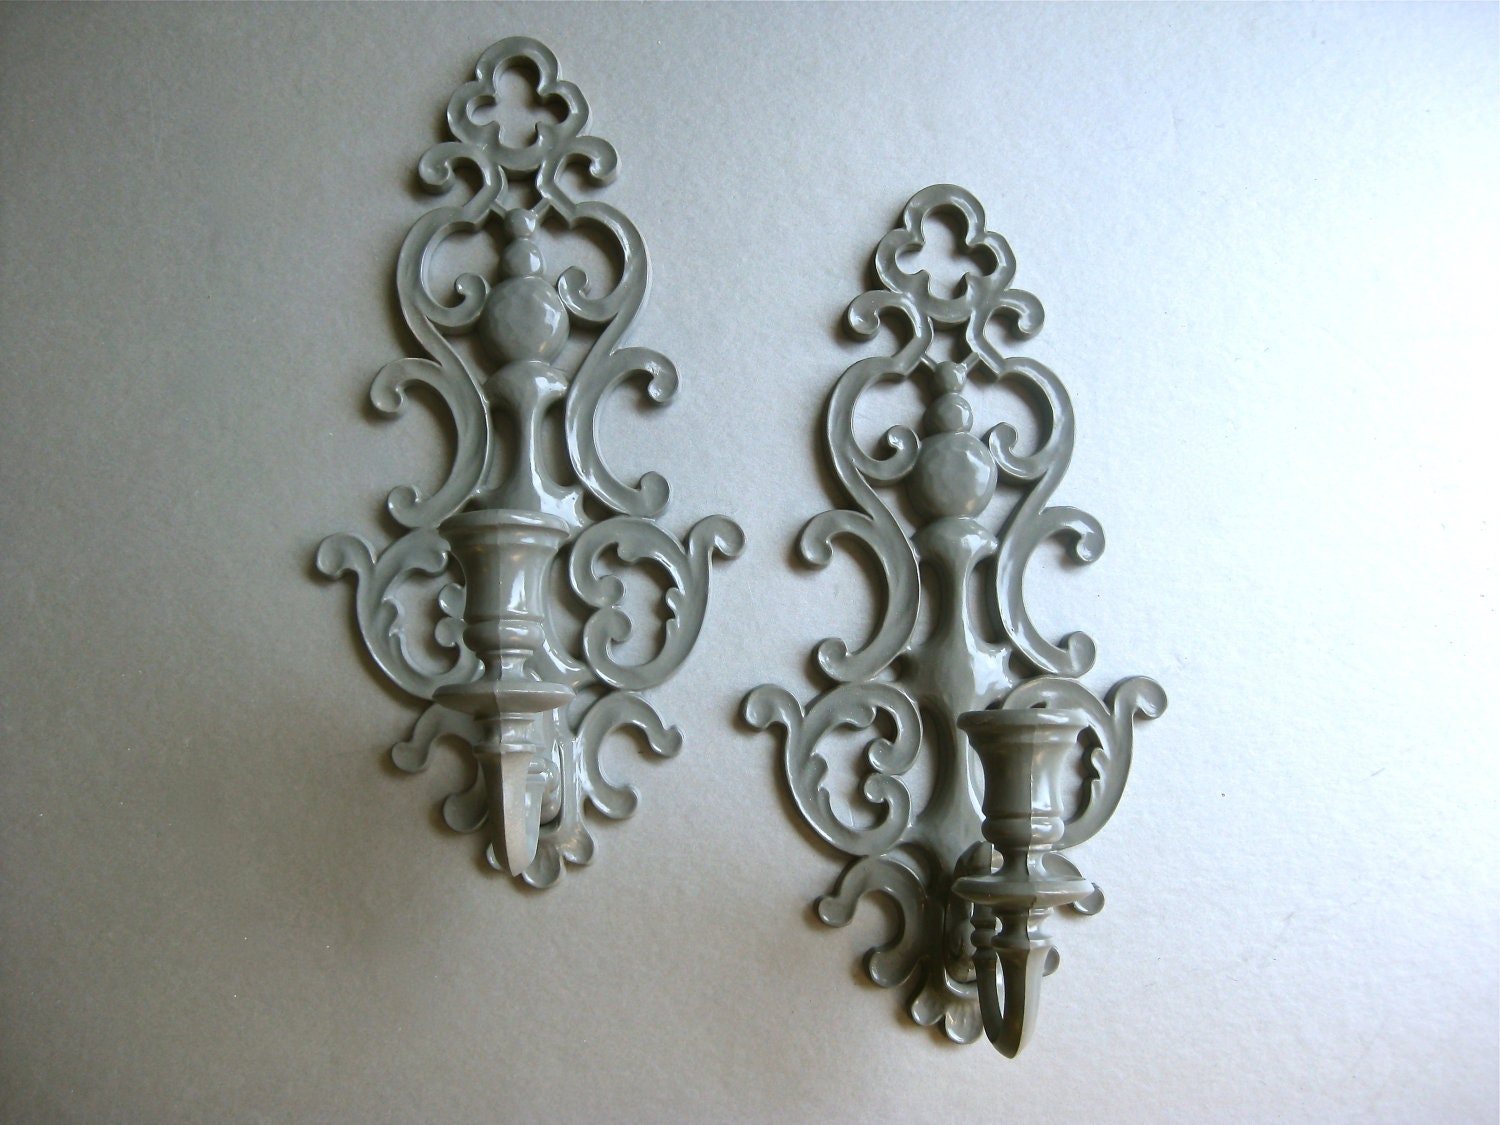 Candle Sconces Wall Decor : Vintage Candle Sconces Gray Sconce Candle Holders Shabby